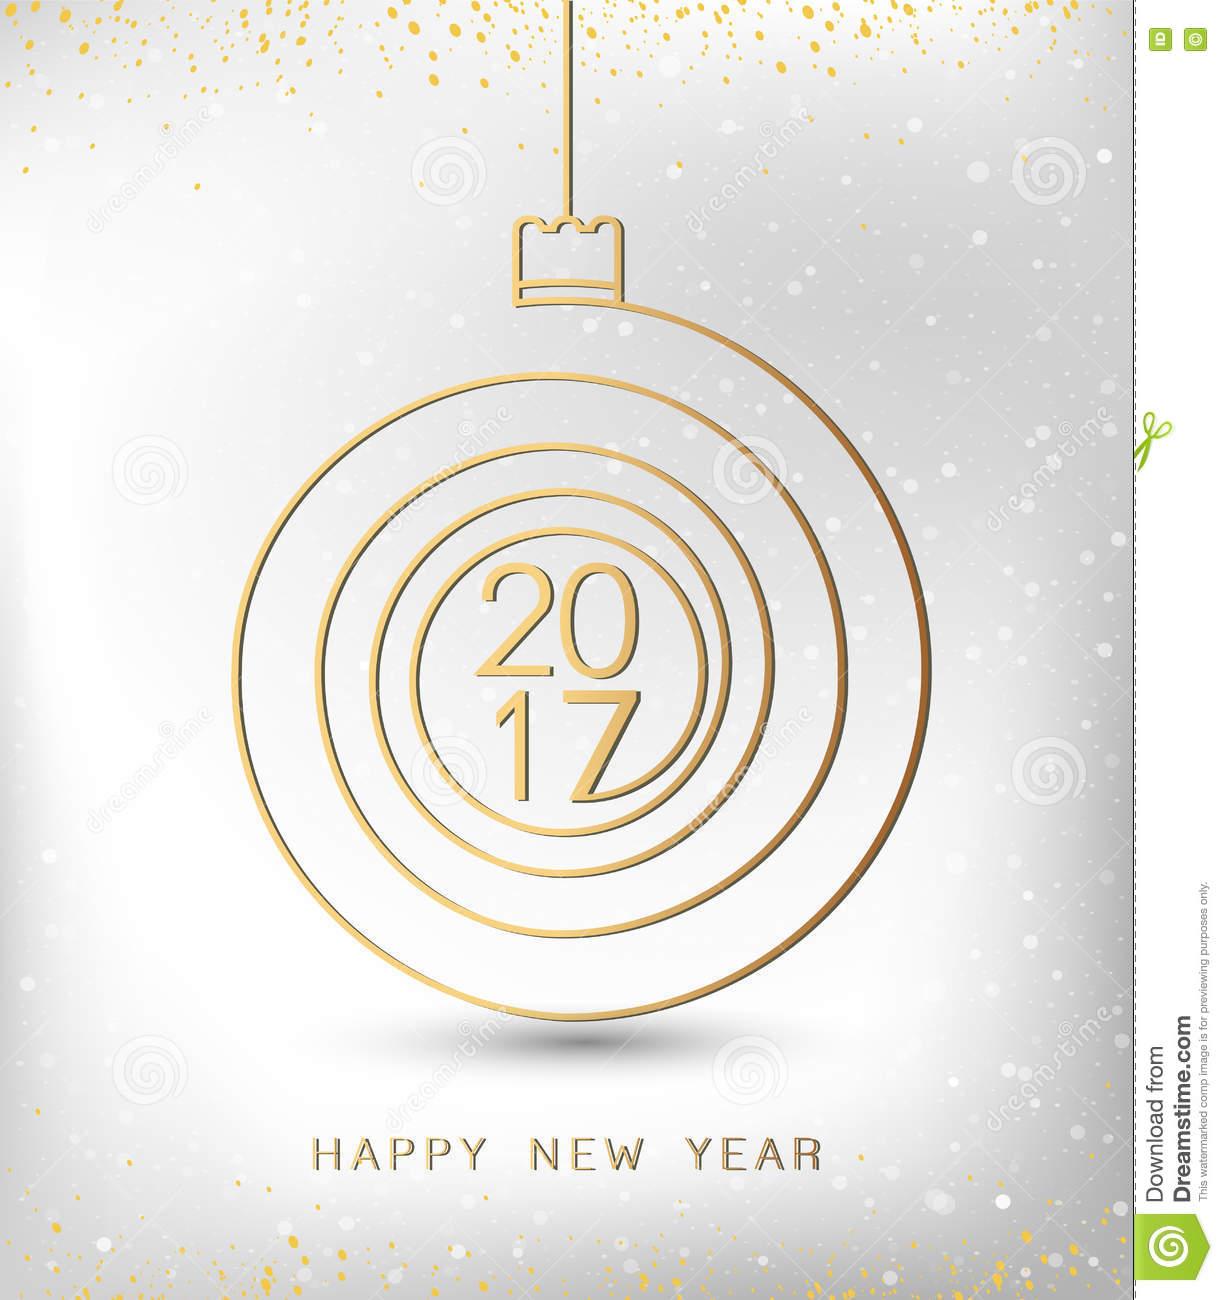 merry christmas happy new year gold 2017 spiral shape ideal for merry christmas happy new year gold 2017 spiral shape ideal for xmas card or elegant